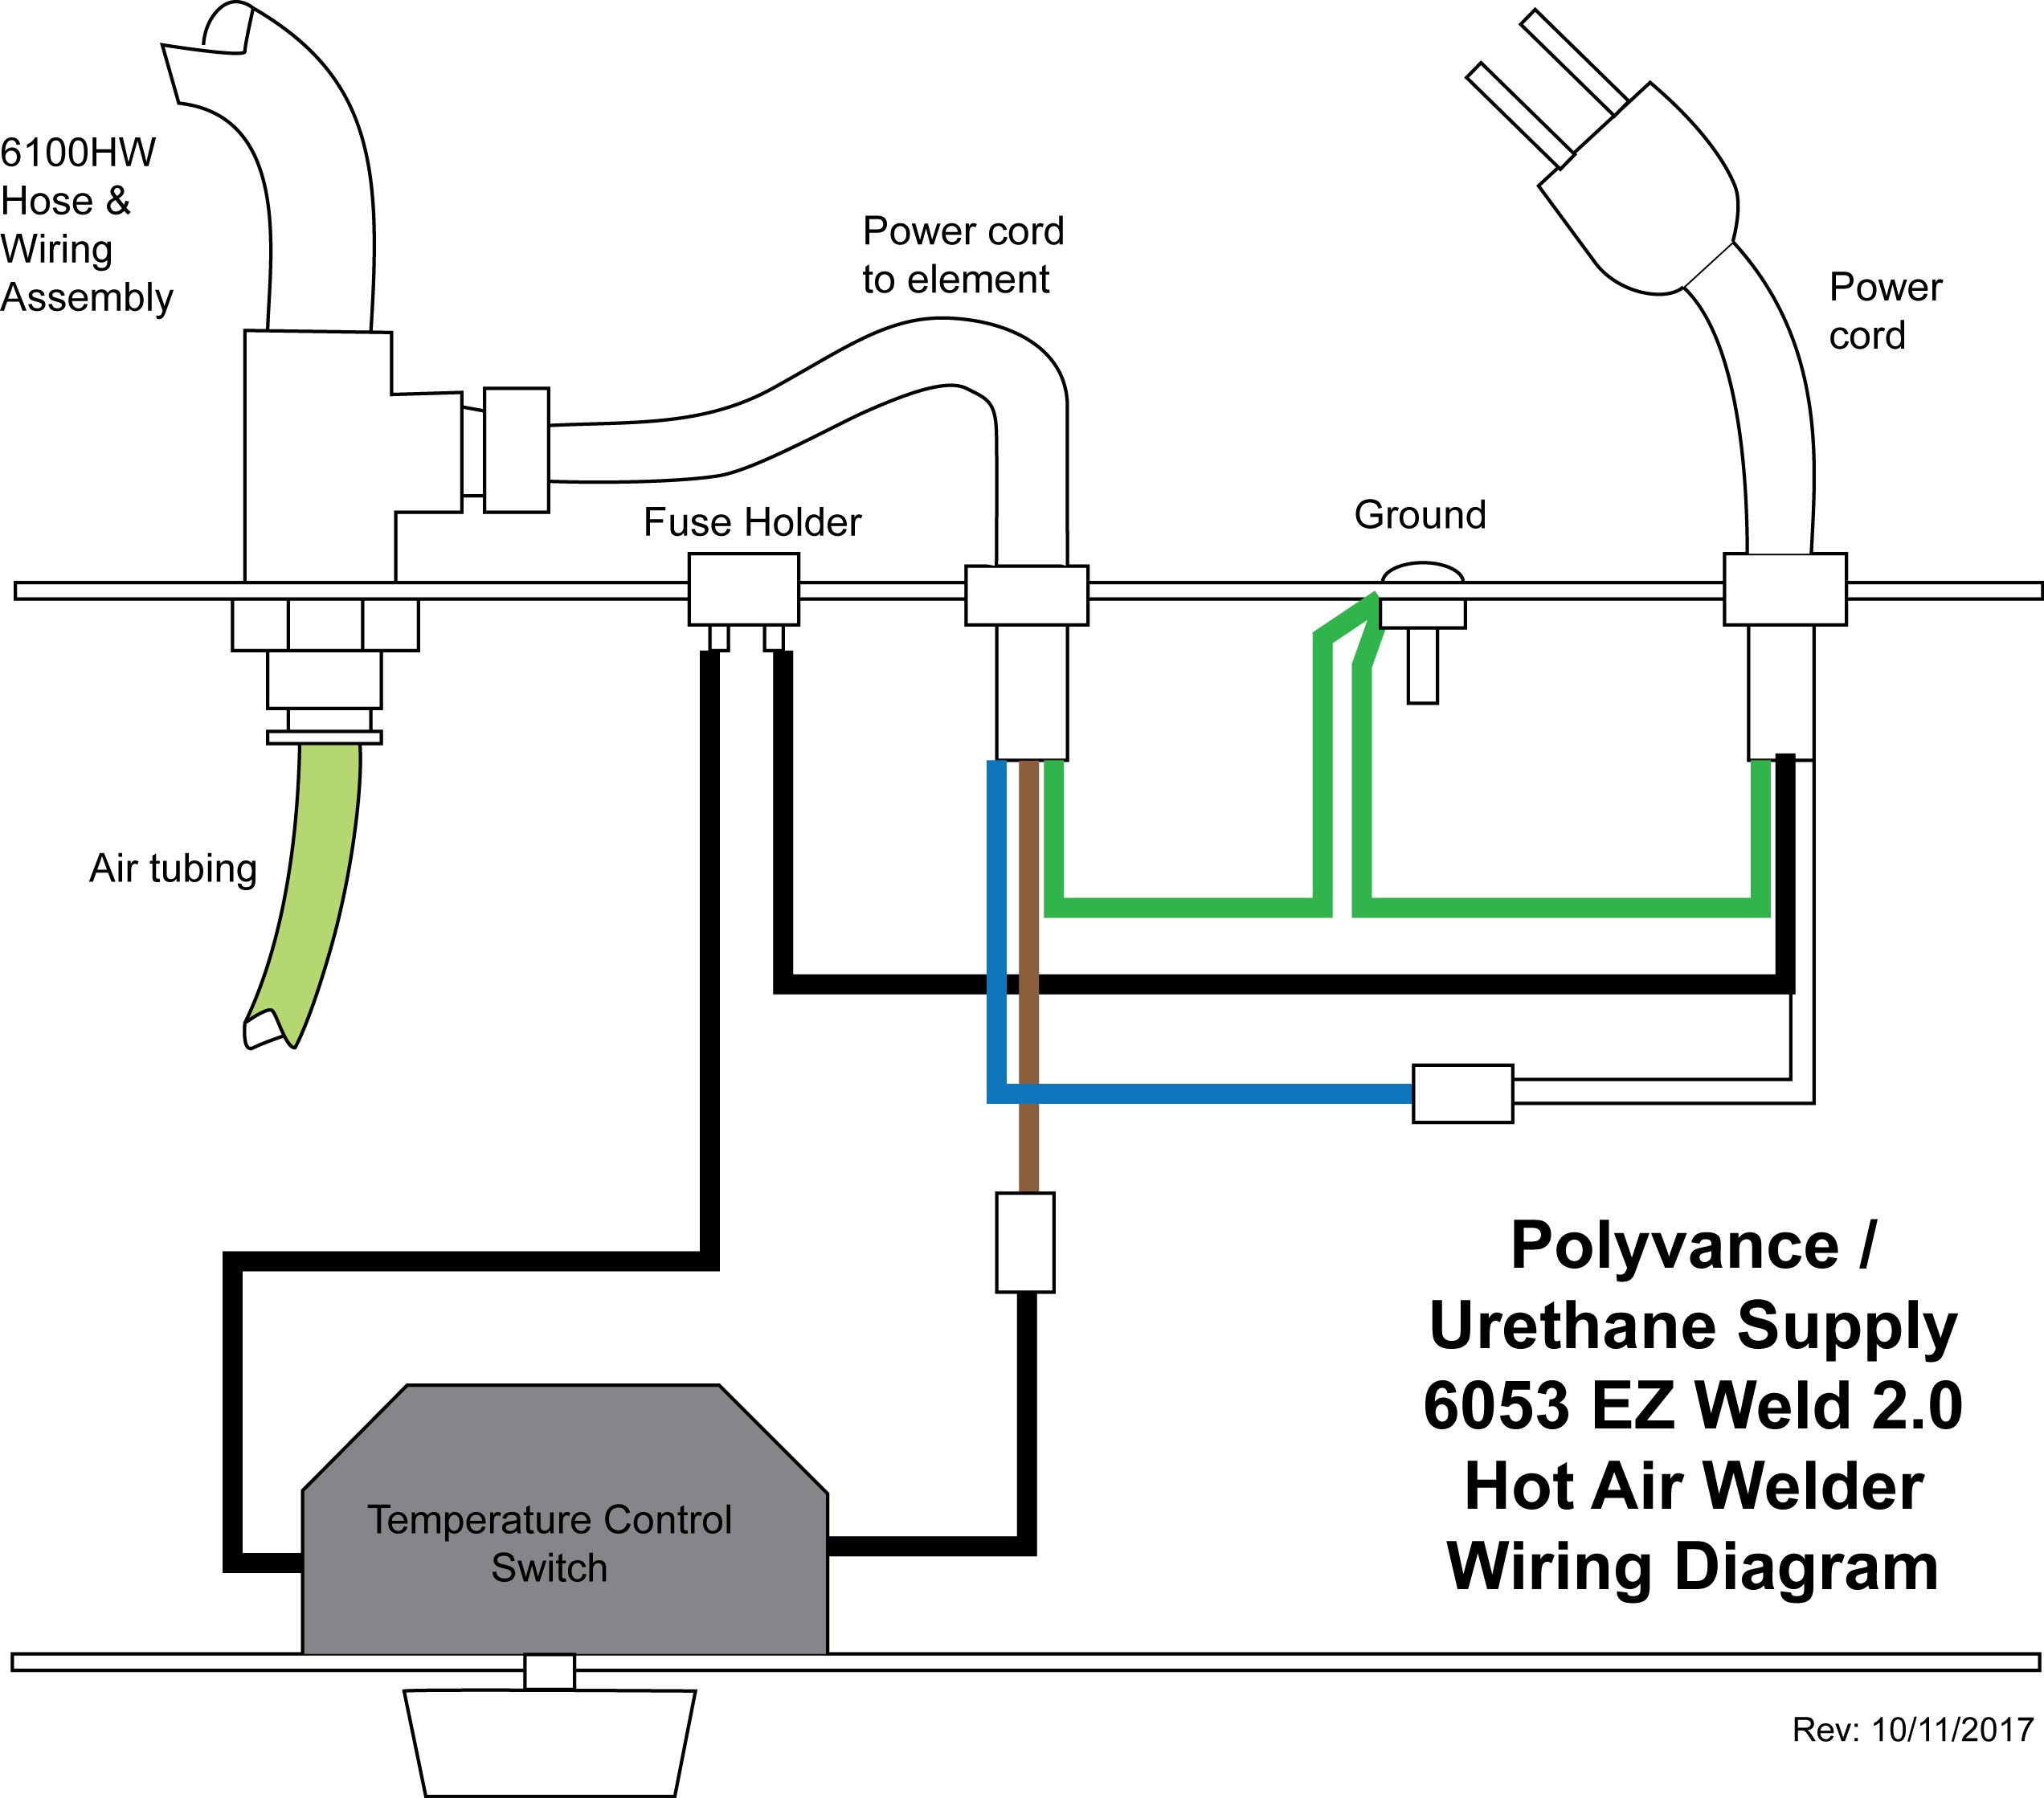 Hot Air Welder Wiring Diagram Just Another Blog 240v Hose Assembly Parts Rh Polyvance Com